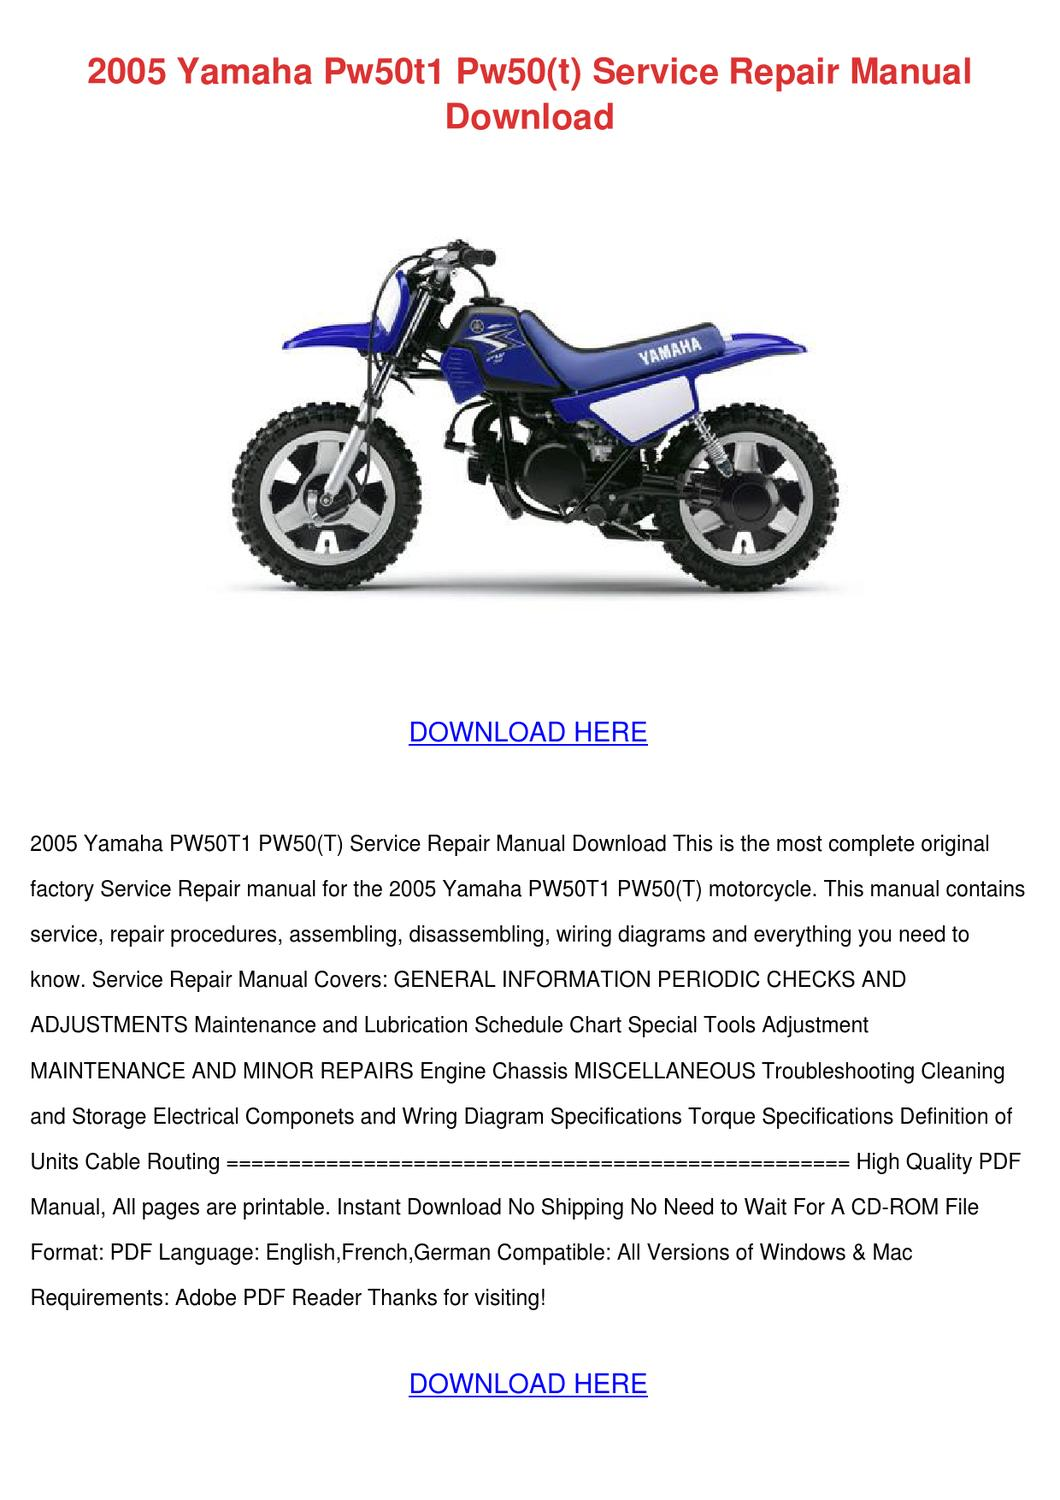 2005 Yamaha Pw50t1 Pw50t Service Repair Manua By